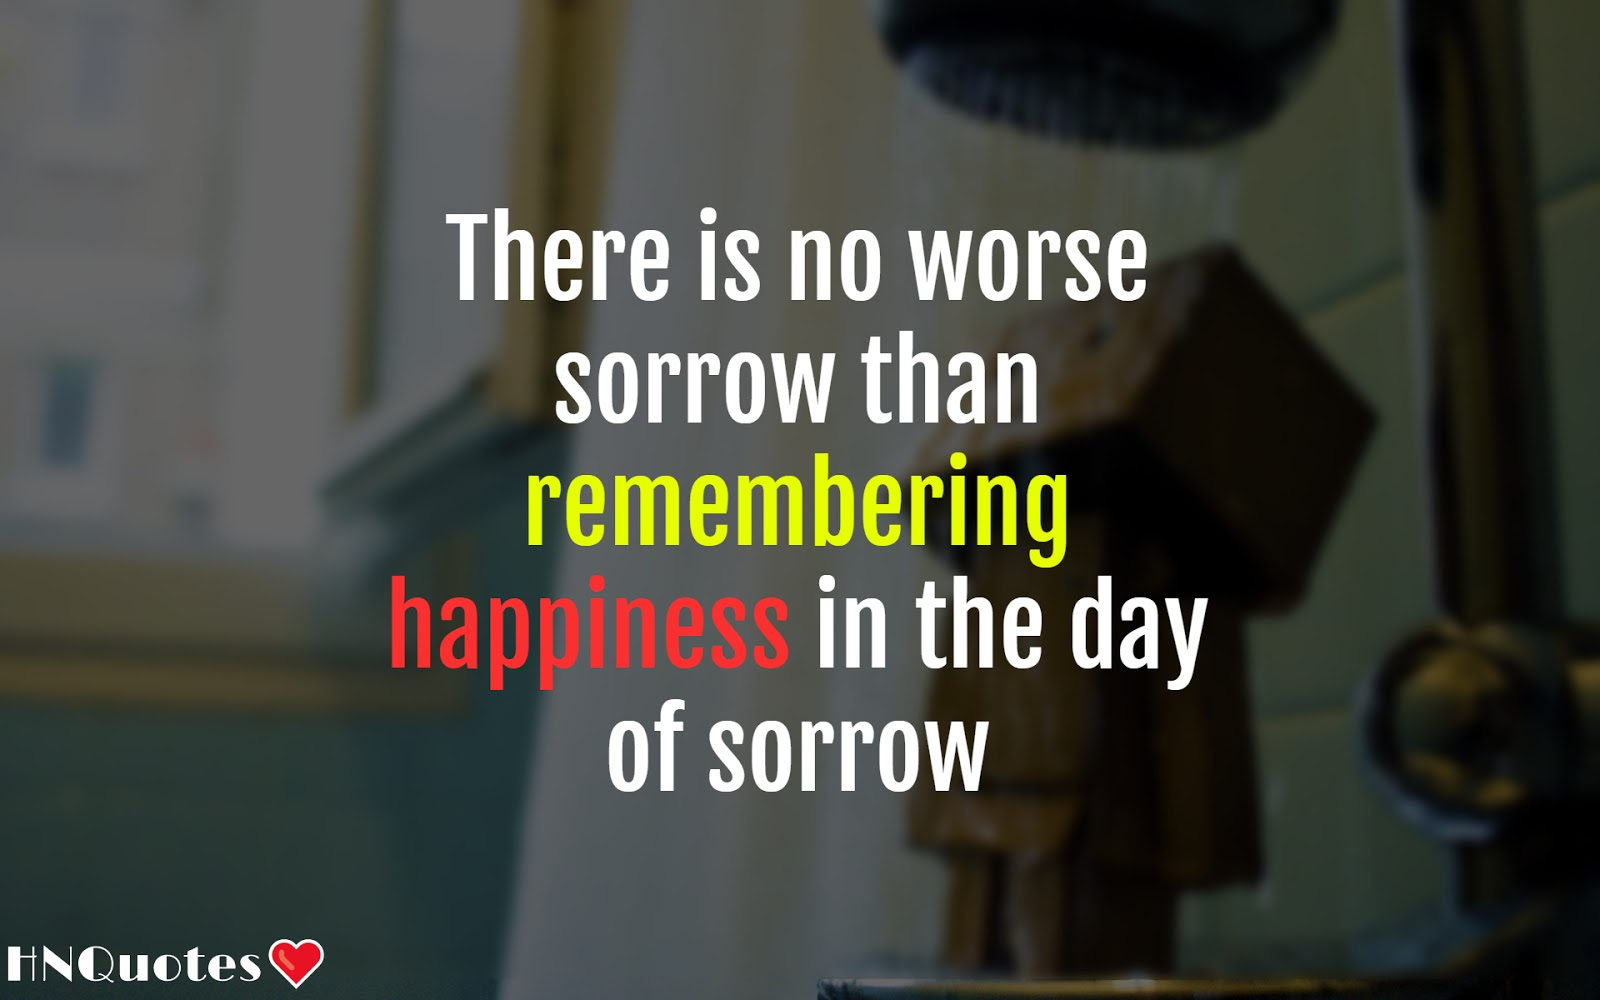 Sad-&-Emotional-Quotes-on-Life-75-Best-Emotional-Quotes[HNQuotes]